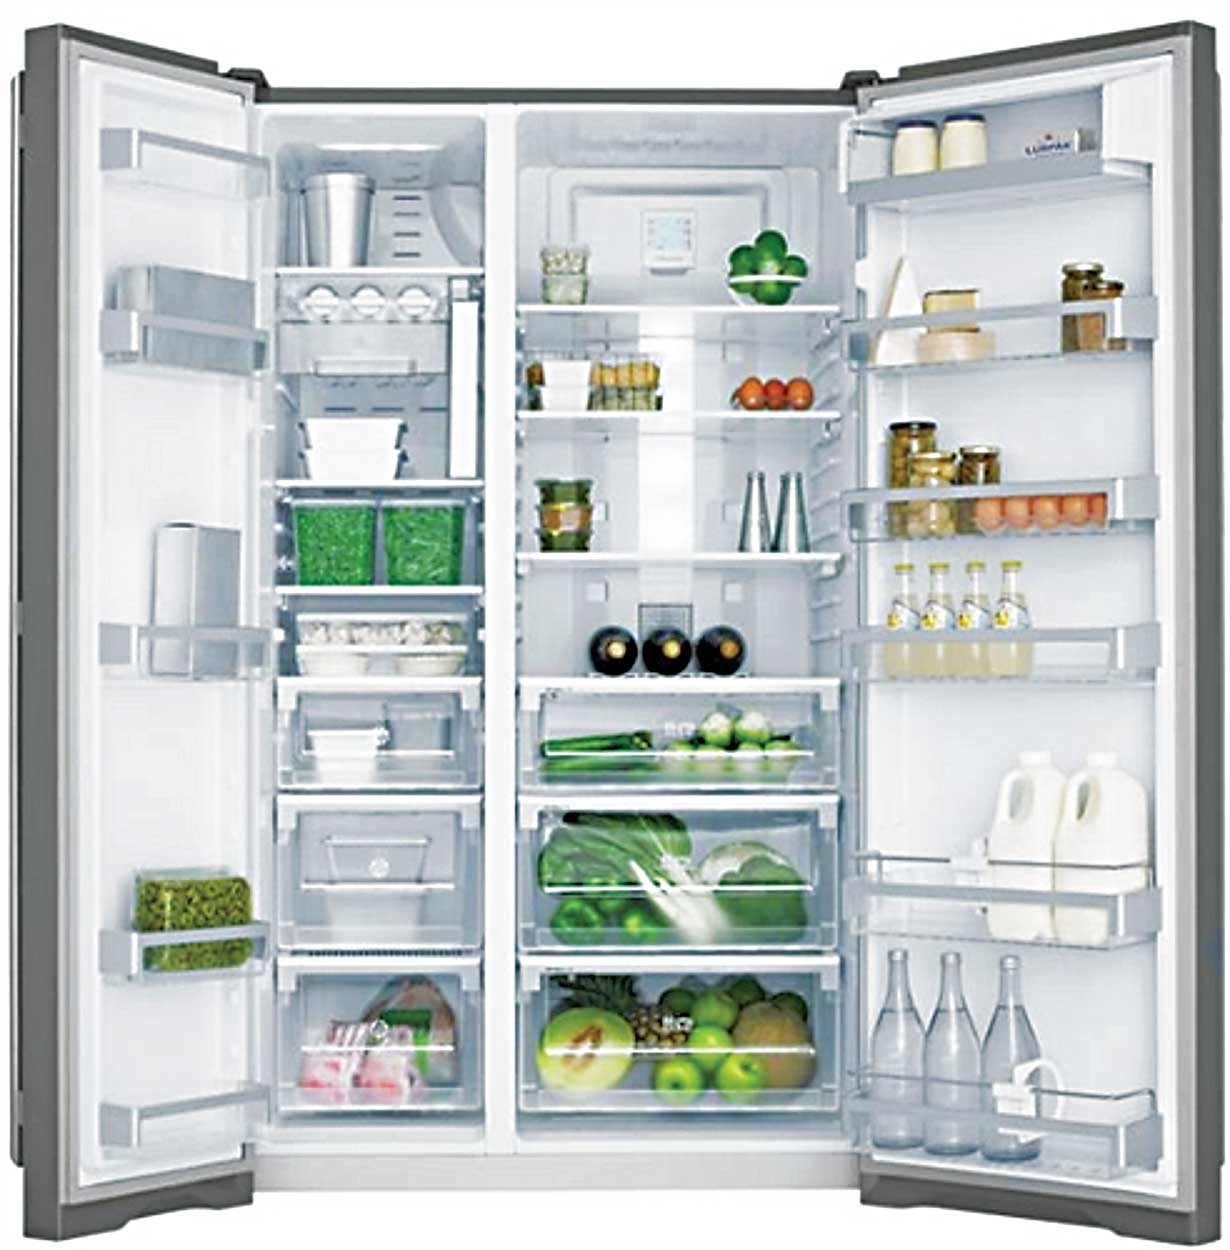 Ese5608ta New Fridge From Electrolux Betterinteriors